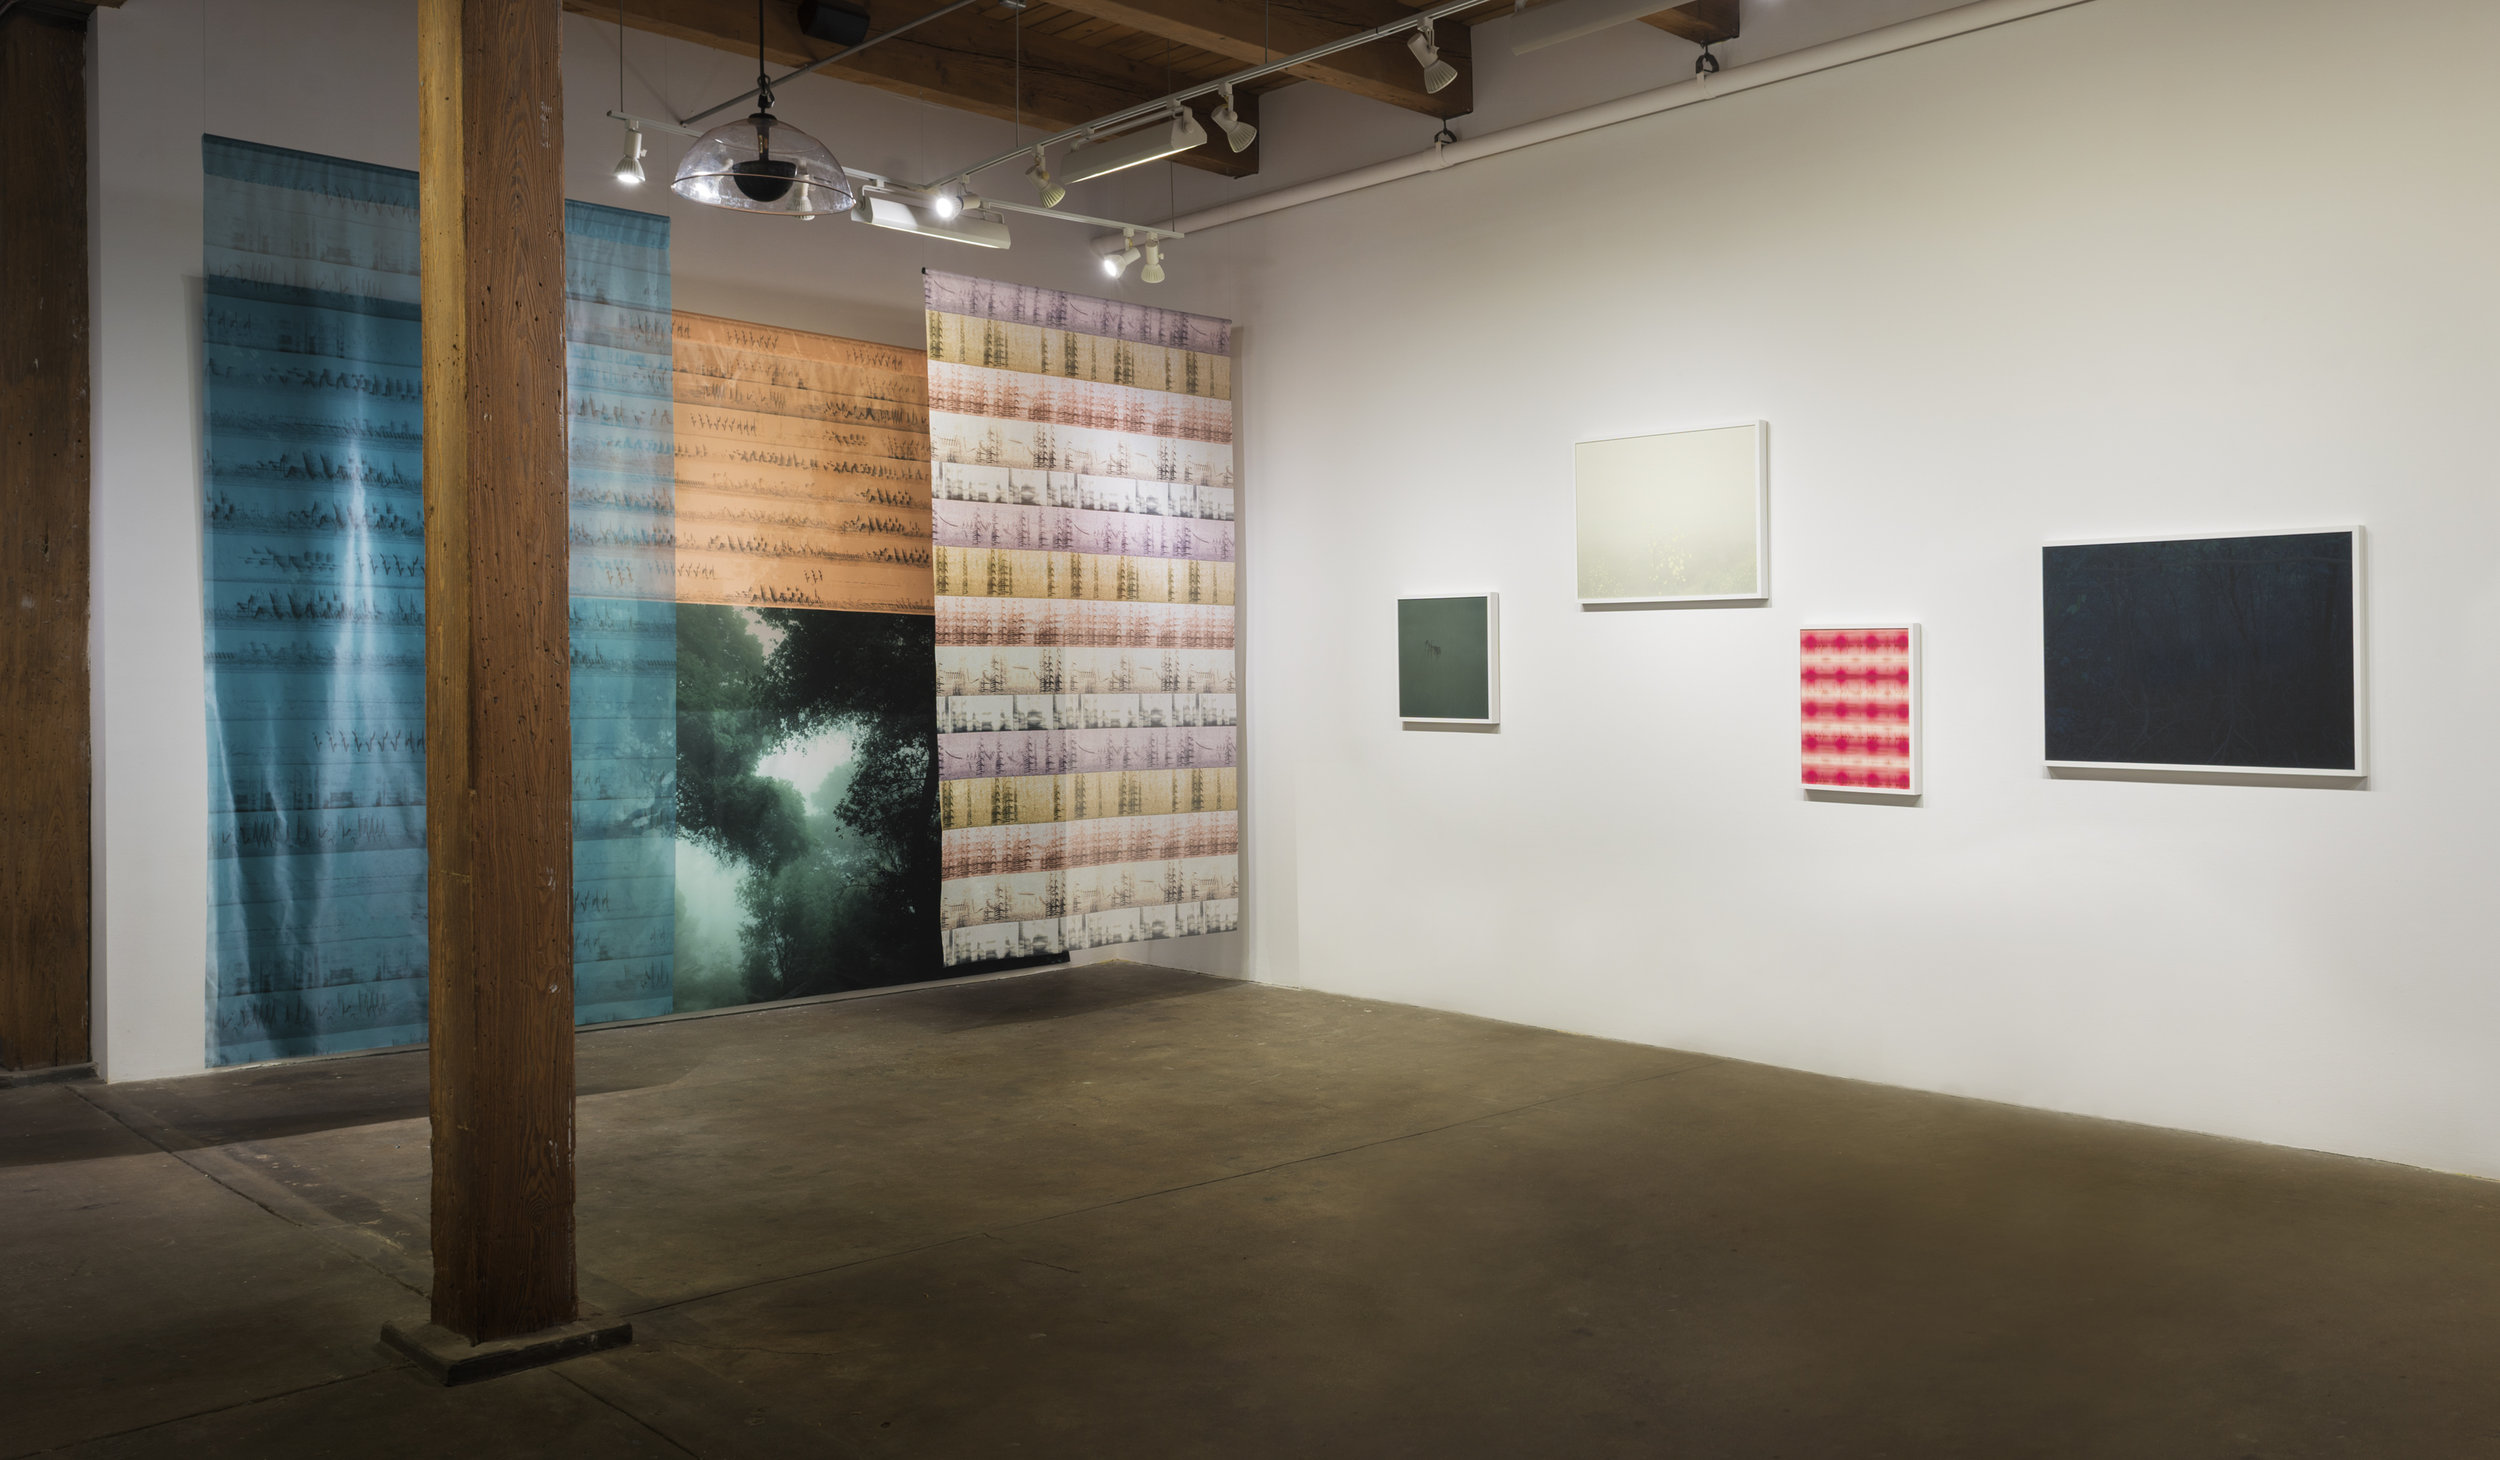 """Carrie Secrist Gallery 2018   Truth Claim / Green Daze, Migration (Nene, and Indigo Bunting, male and female)   Solvent prints on silk and shear fabric / 10' x 16' x 6'   Green Daze    (10' x 16')    Indigo Bunting female, calls    (40"""" x 12' )    Nene, mating calls    (10' x 72"""")    Indigo Bunting male, calls    (10' x 60"""")     Tidal Haiku / Yellow Drift / Ciconia ciconia, White Stork (calls) / Mangroves      Parabolic Speaker Audio Installation    On any Given Night: migration season along the Mississippi     Flyway (audio installation) Sound editing by Alex Drosen     Audio File / Loop 20 minutes    Recordings from 1950- 2016 by Arthur A. Allen, Gregory Budney, Martha Fischer, William W.H. Gunn, Justin Hite, Peter Keane, Geoffrey A. Keller, Bob McGuire, Steven R.Pantle, Thomas G. Sandler, and Gerrit Vyn  All Courtesy The Cornell Lab of Ornithology"""